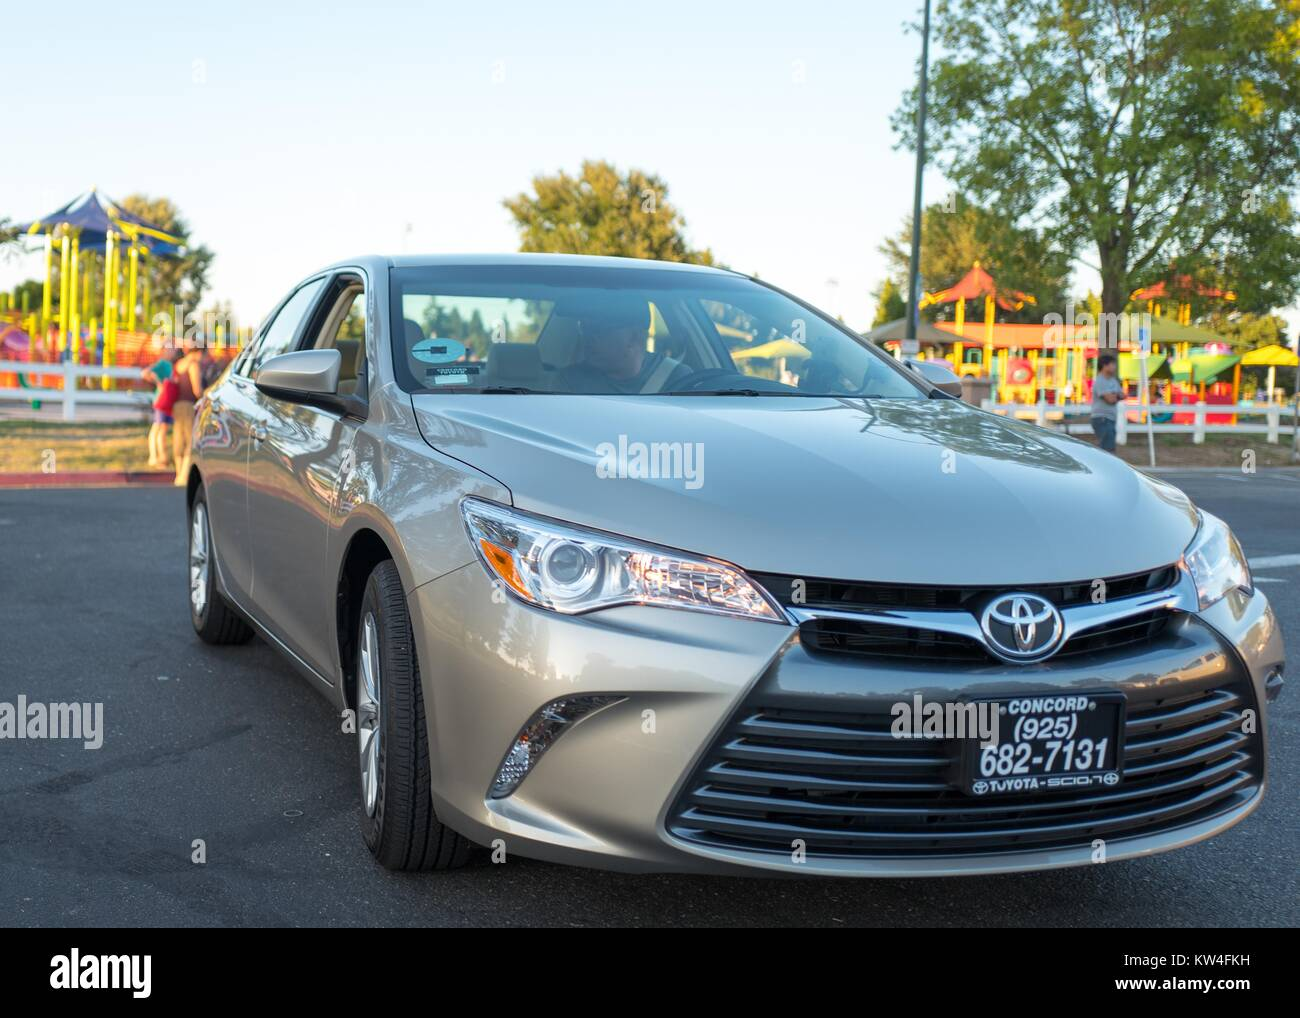 San Francisco Toyota Service >> A Driver For The Uber Car Sharing Service Awaits A Passenger